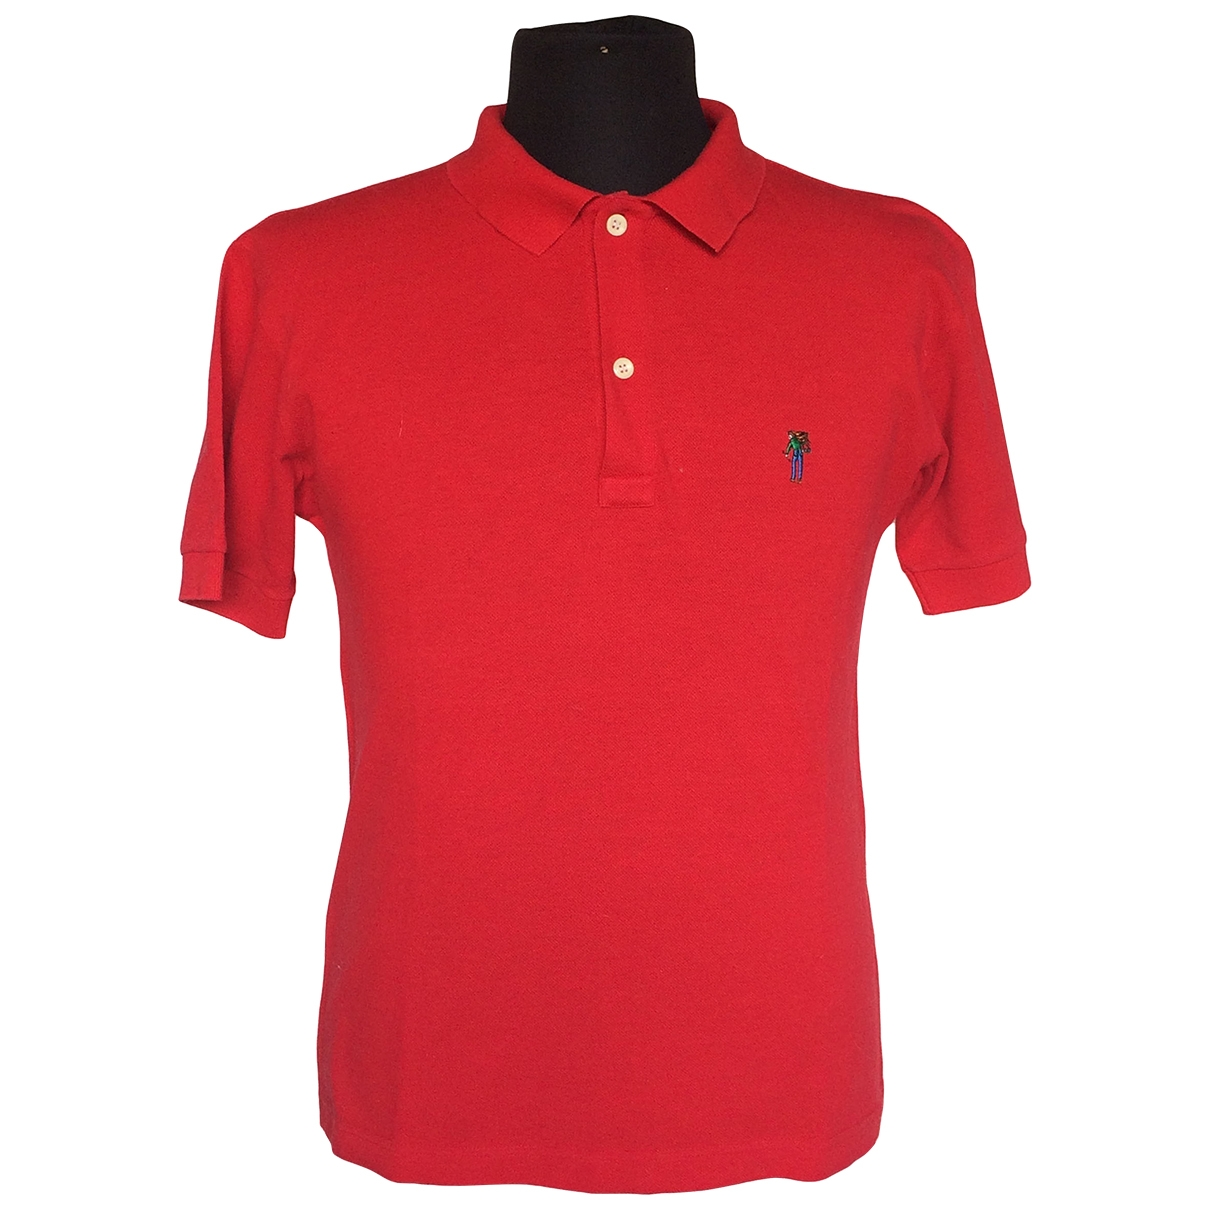 Levis \N Red Cotton Polo shirts for Men S International